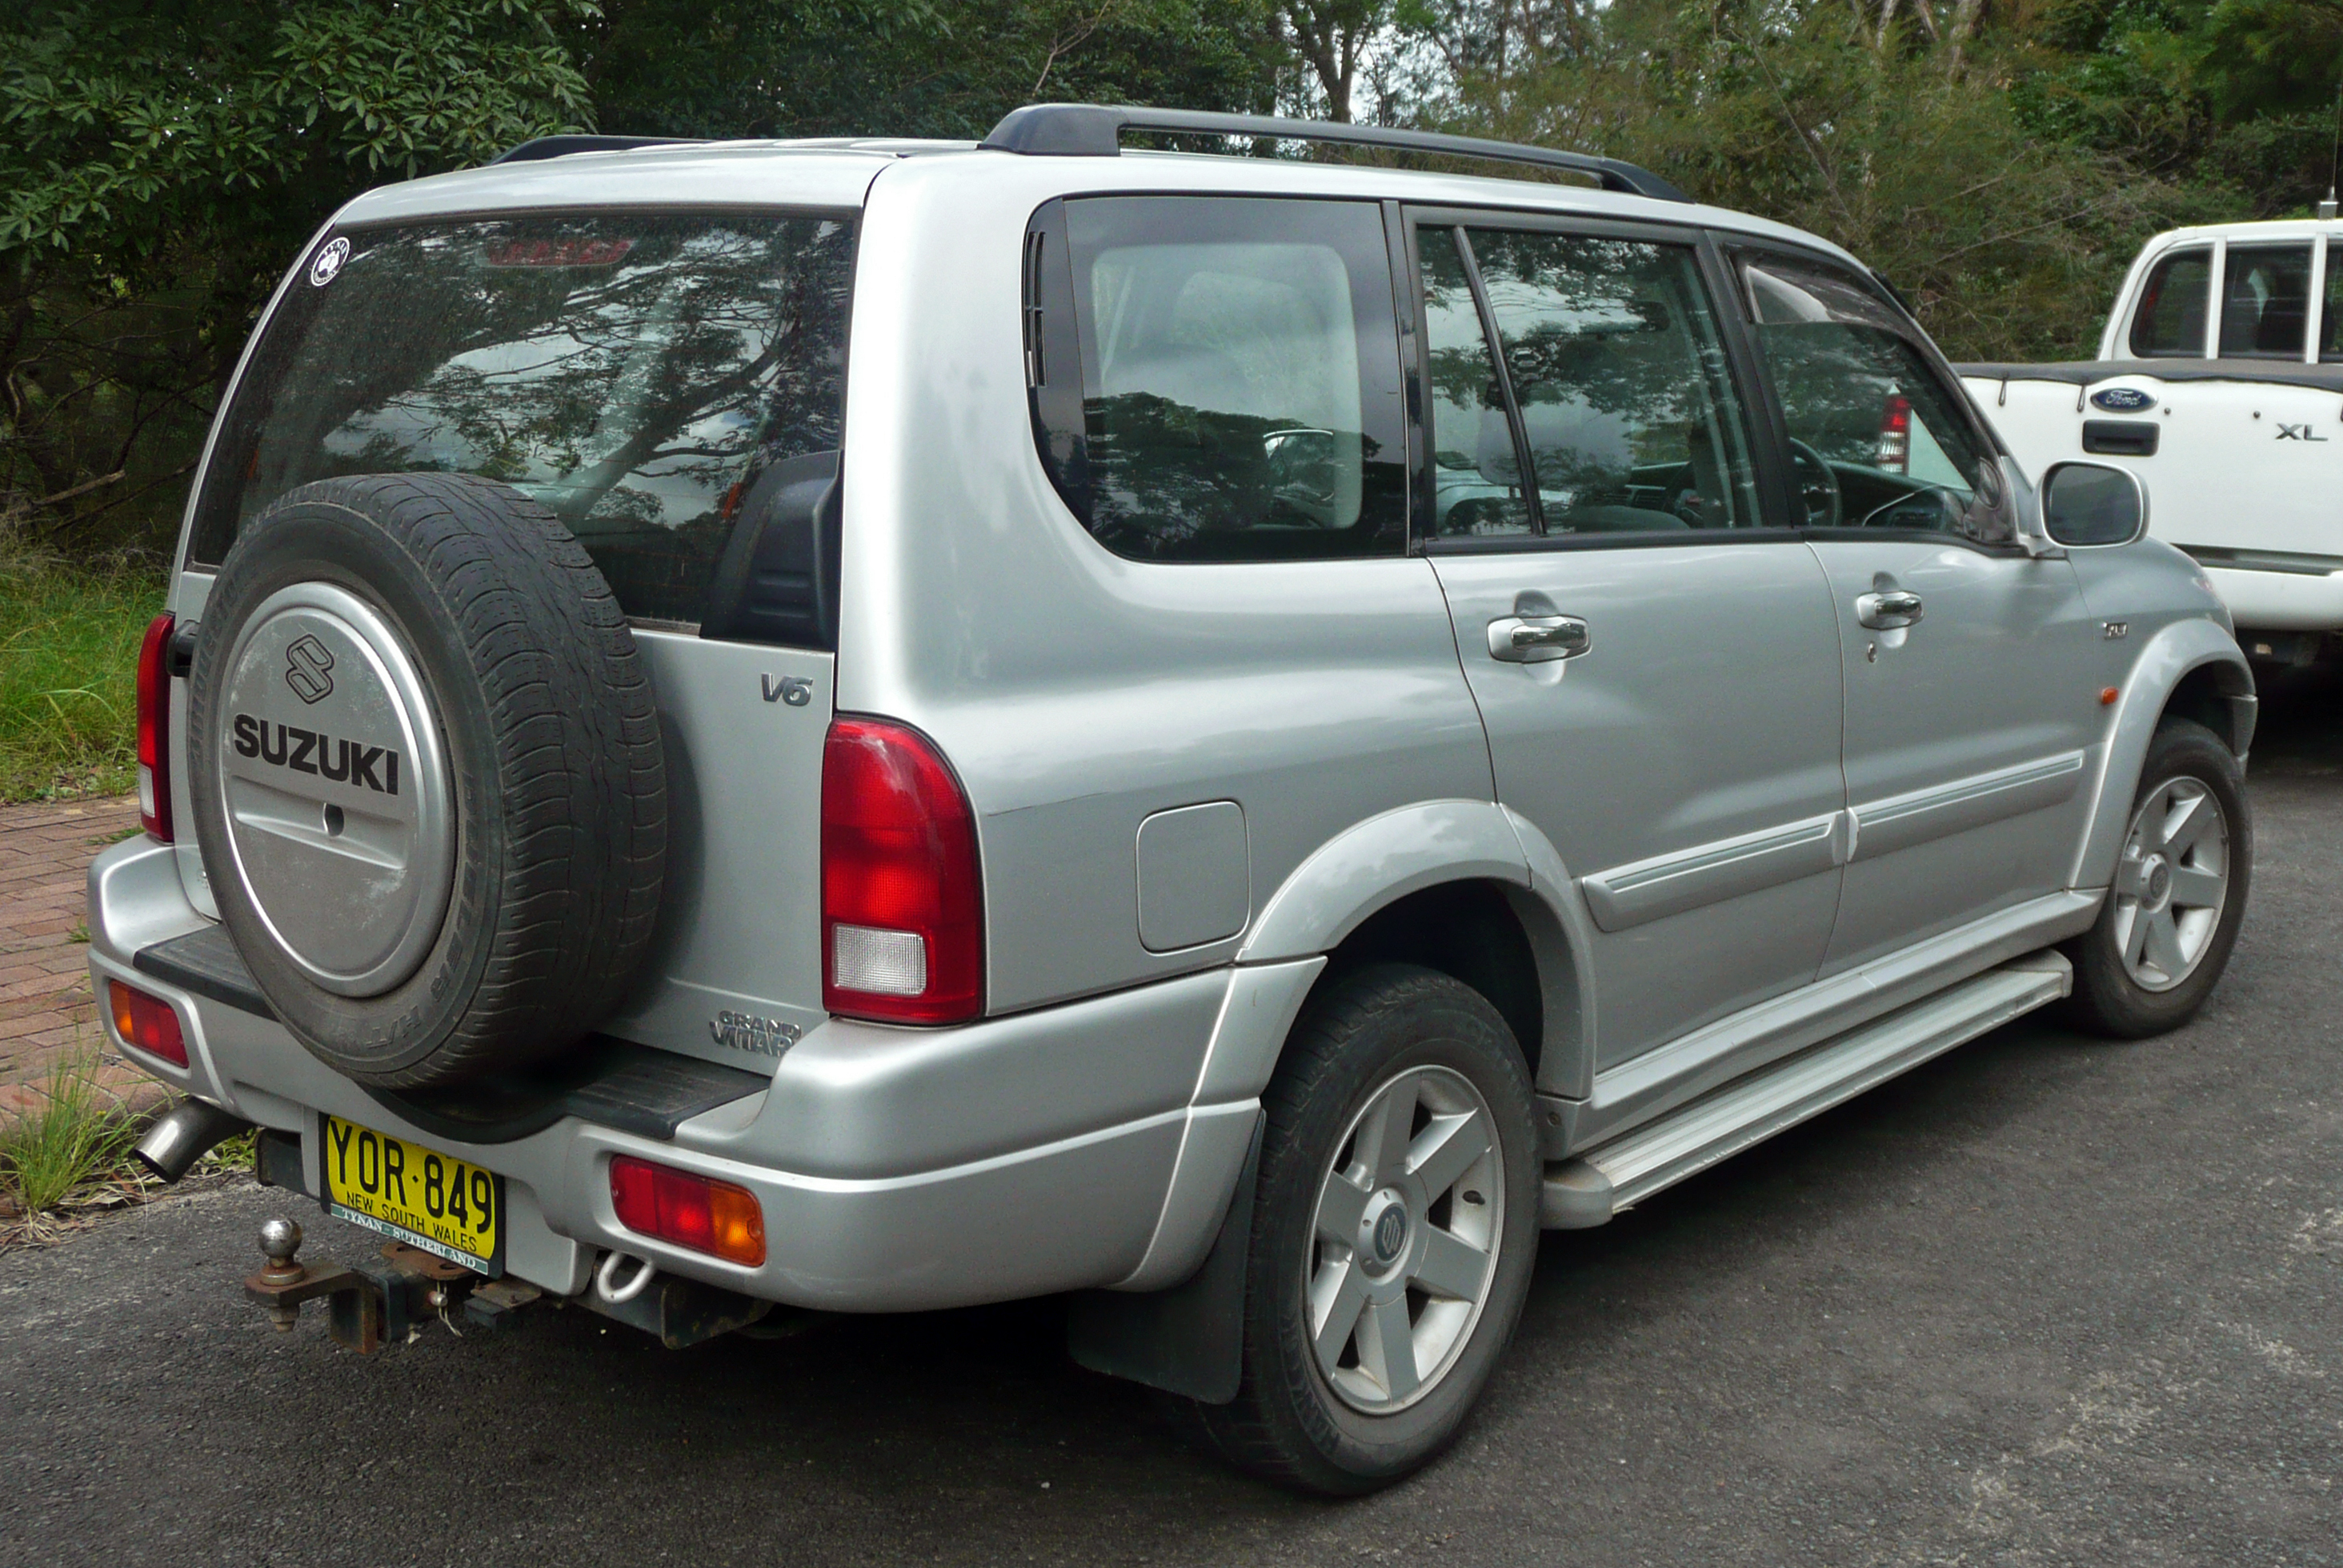 file 2001 2003 suzuki grand vitara xl 7 ja wagon 2010 02 24 02 jpg wikimedia commons https commons wikimedia org wiki file 2001 2003 suzuki grand vitara xl 7 ja wagon 2010 02 24 02 jpg